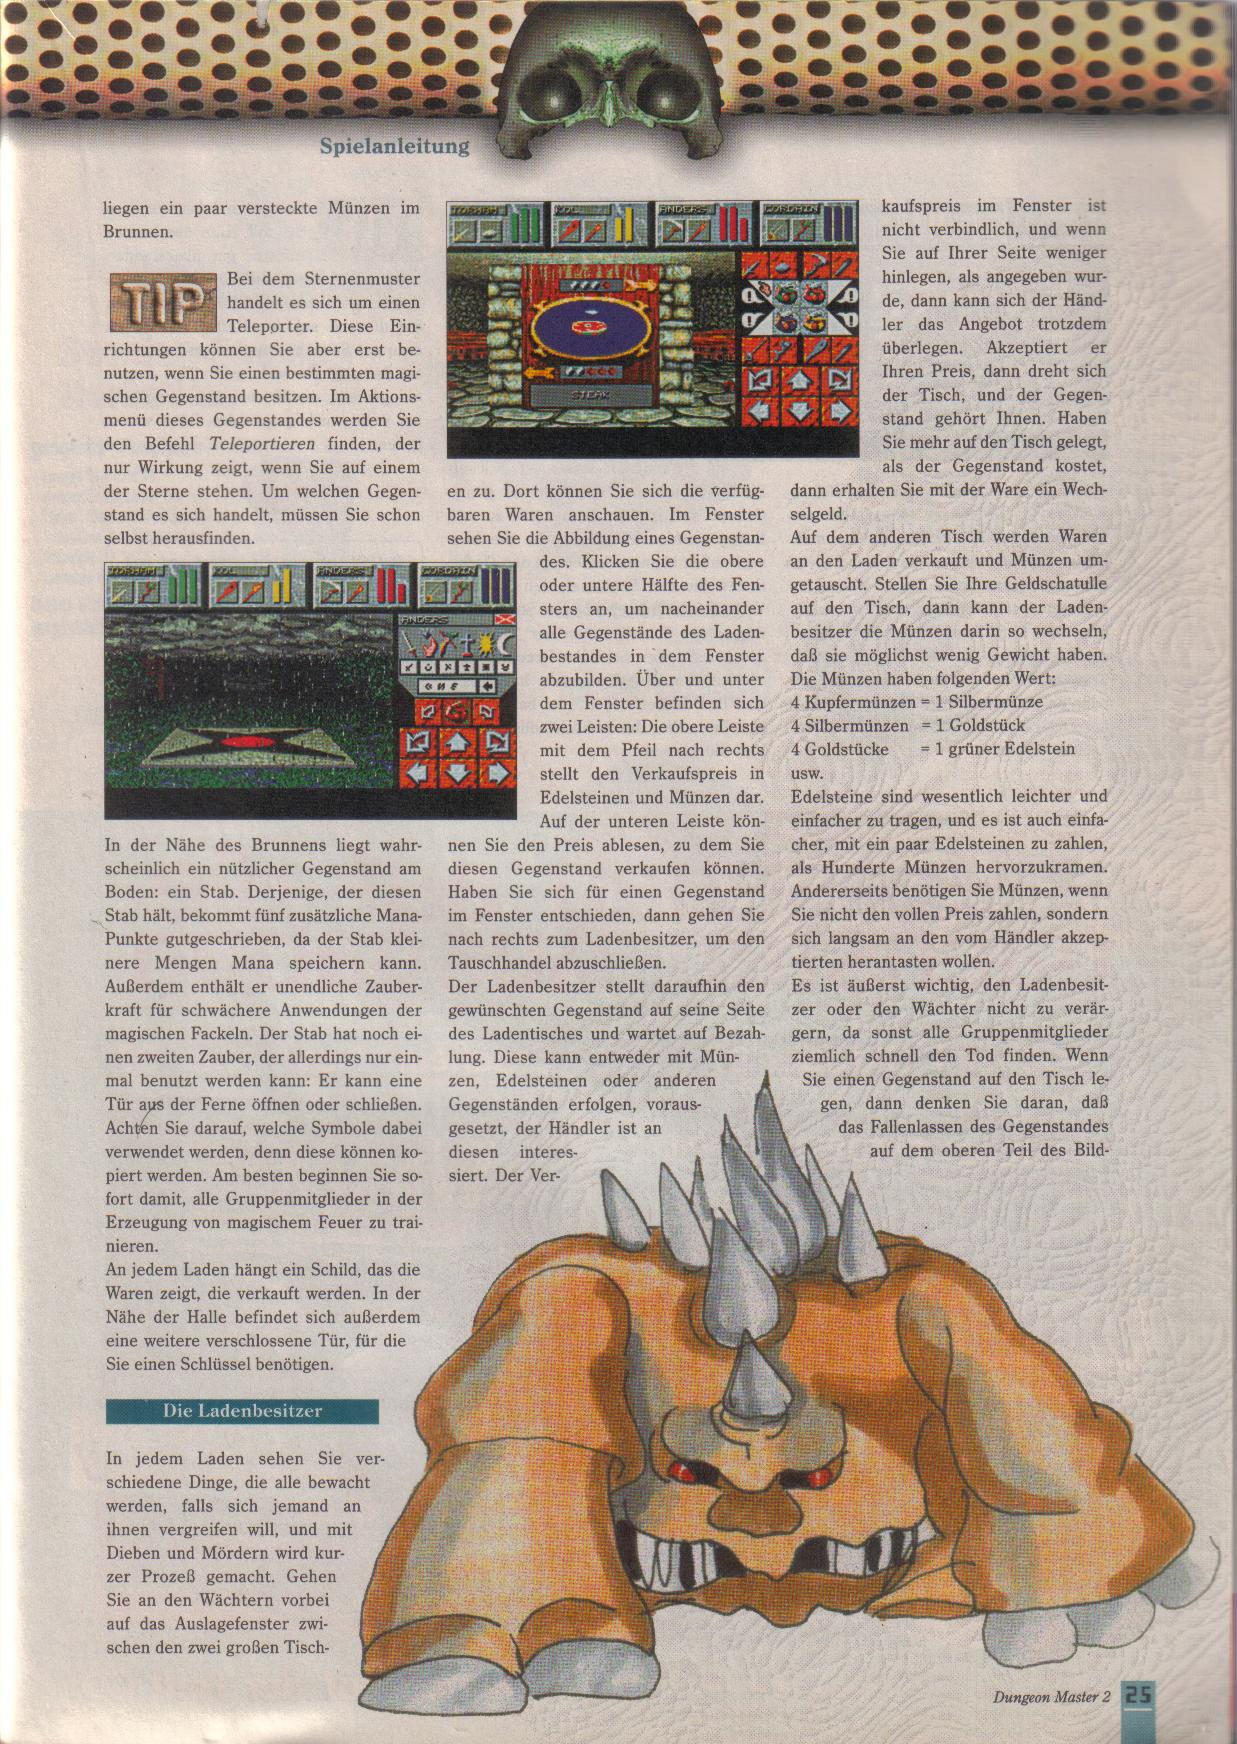 Dungeon Master II for PC (German, Best Seller Games) Page 25